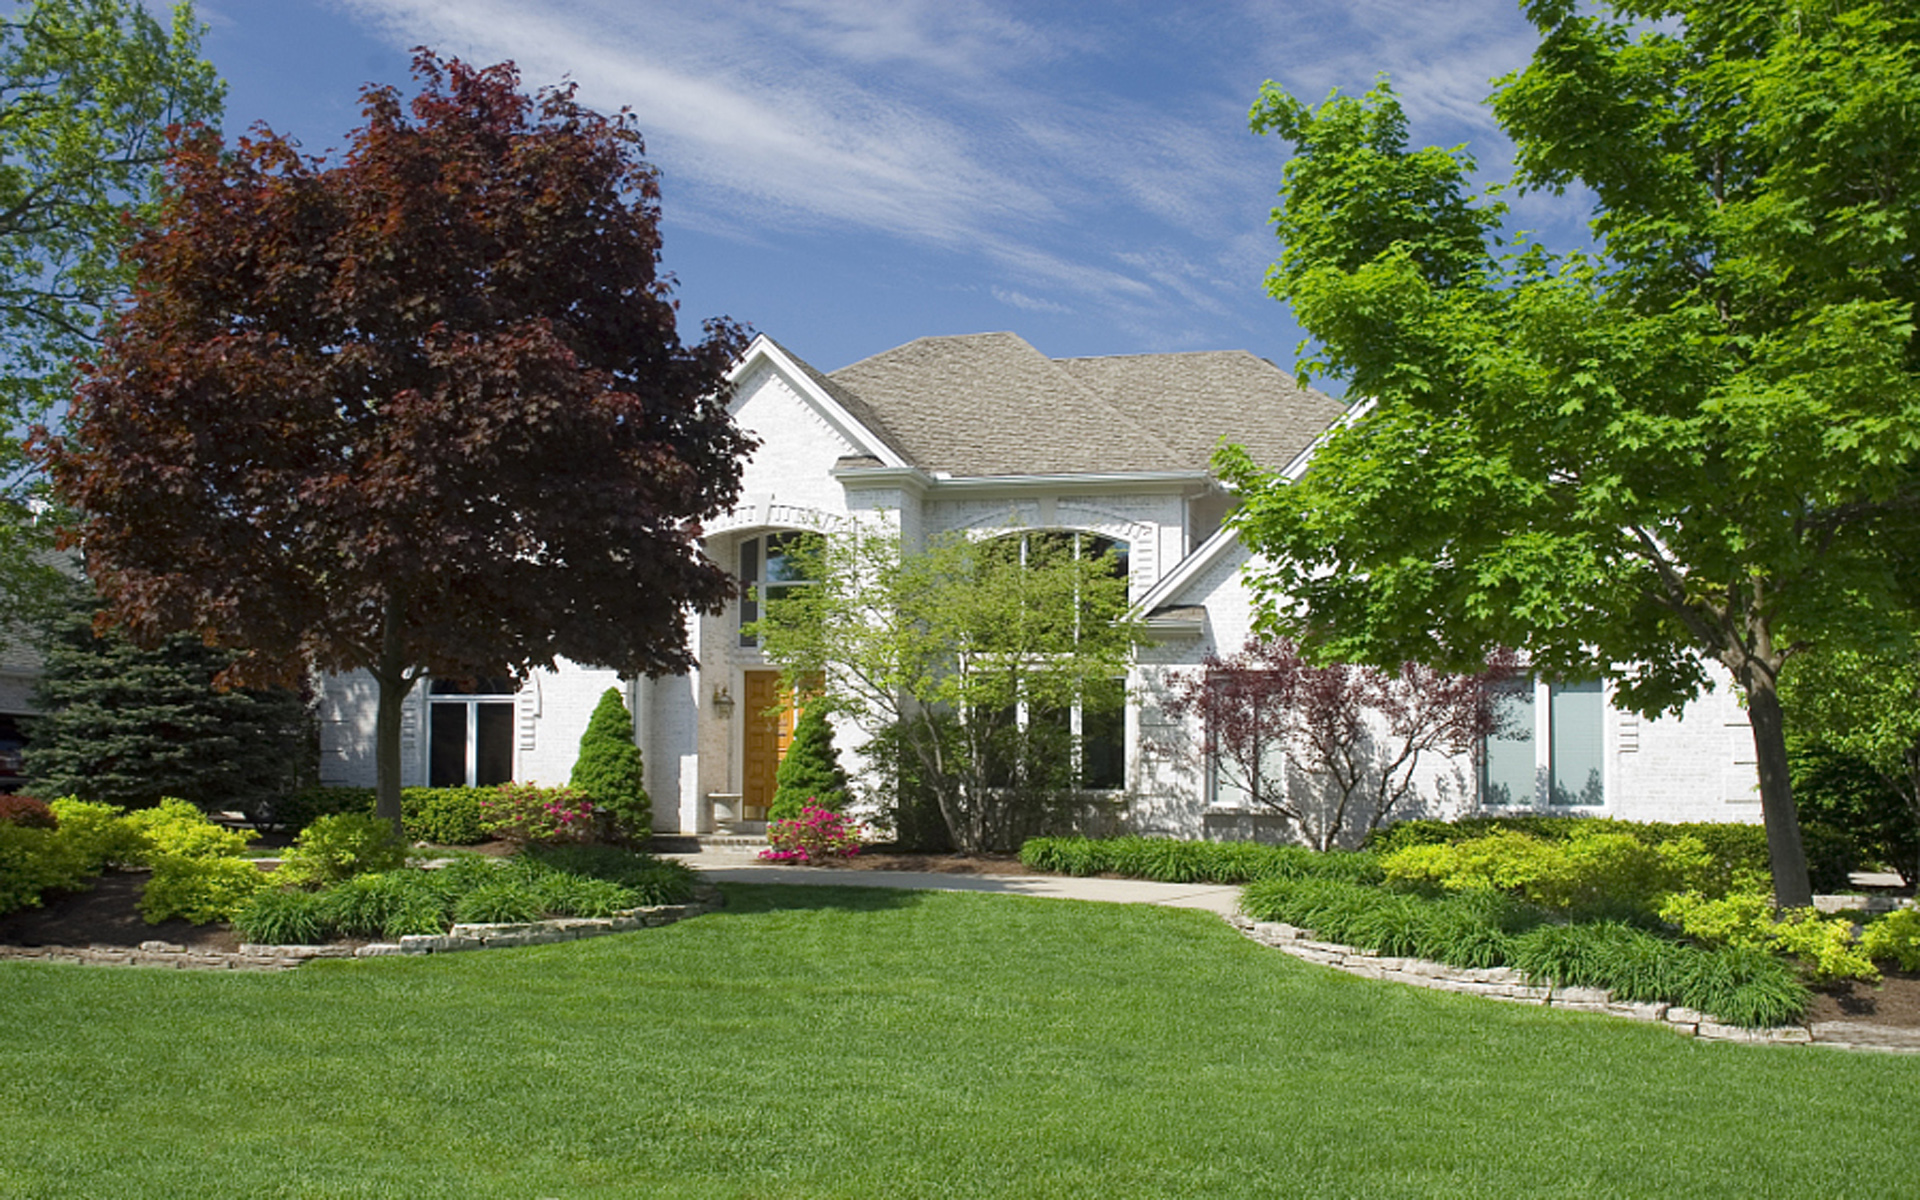 Spring tree pruning helps keep trees healthy and safe - Spring trimming orchard trees healthy ...